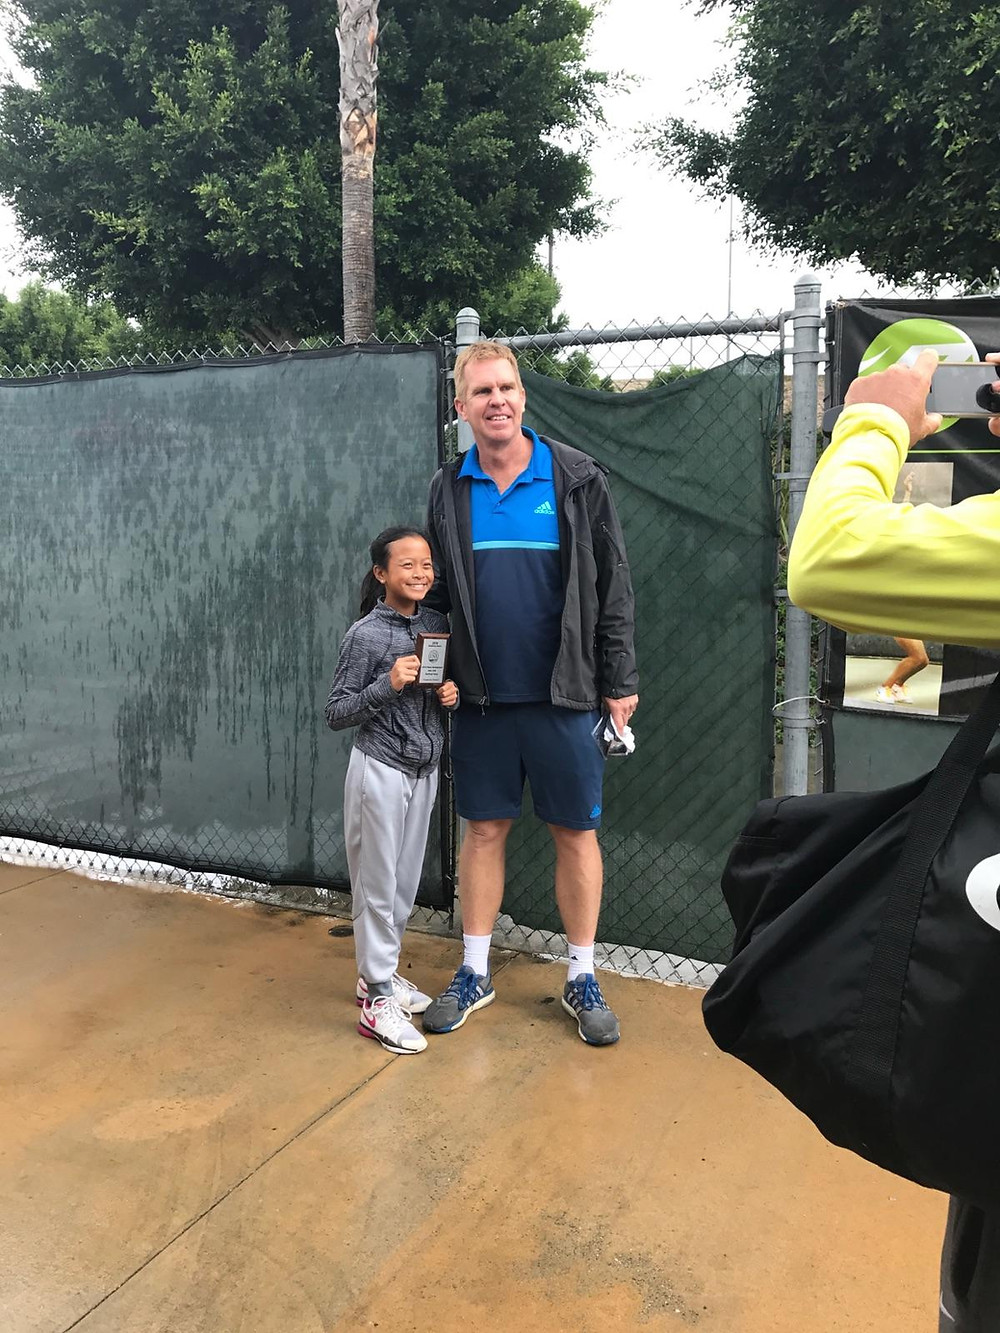 Isabella Chiiv was the only one player awarded for her resiliency on the court at the USTA camp in Carson